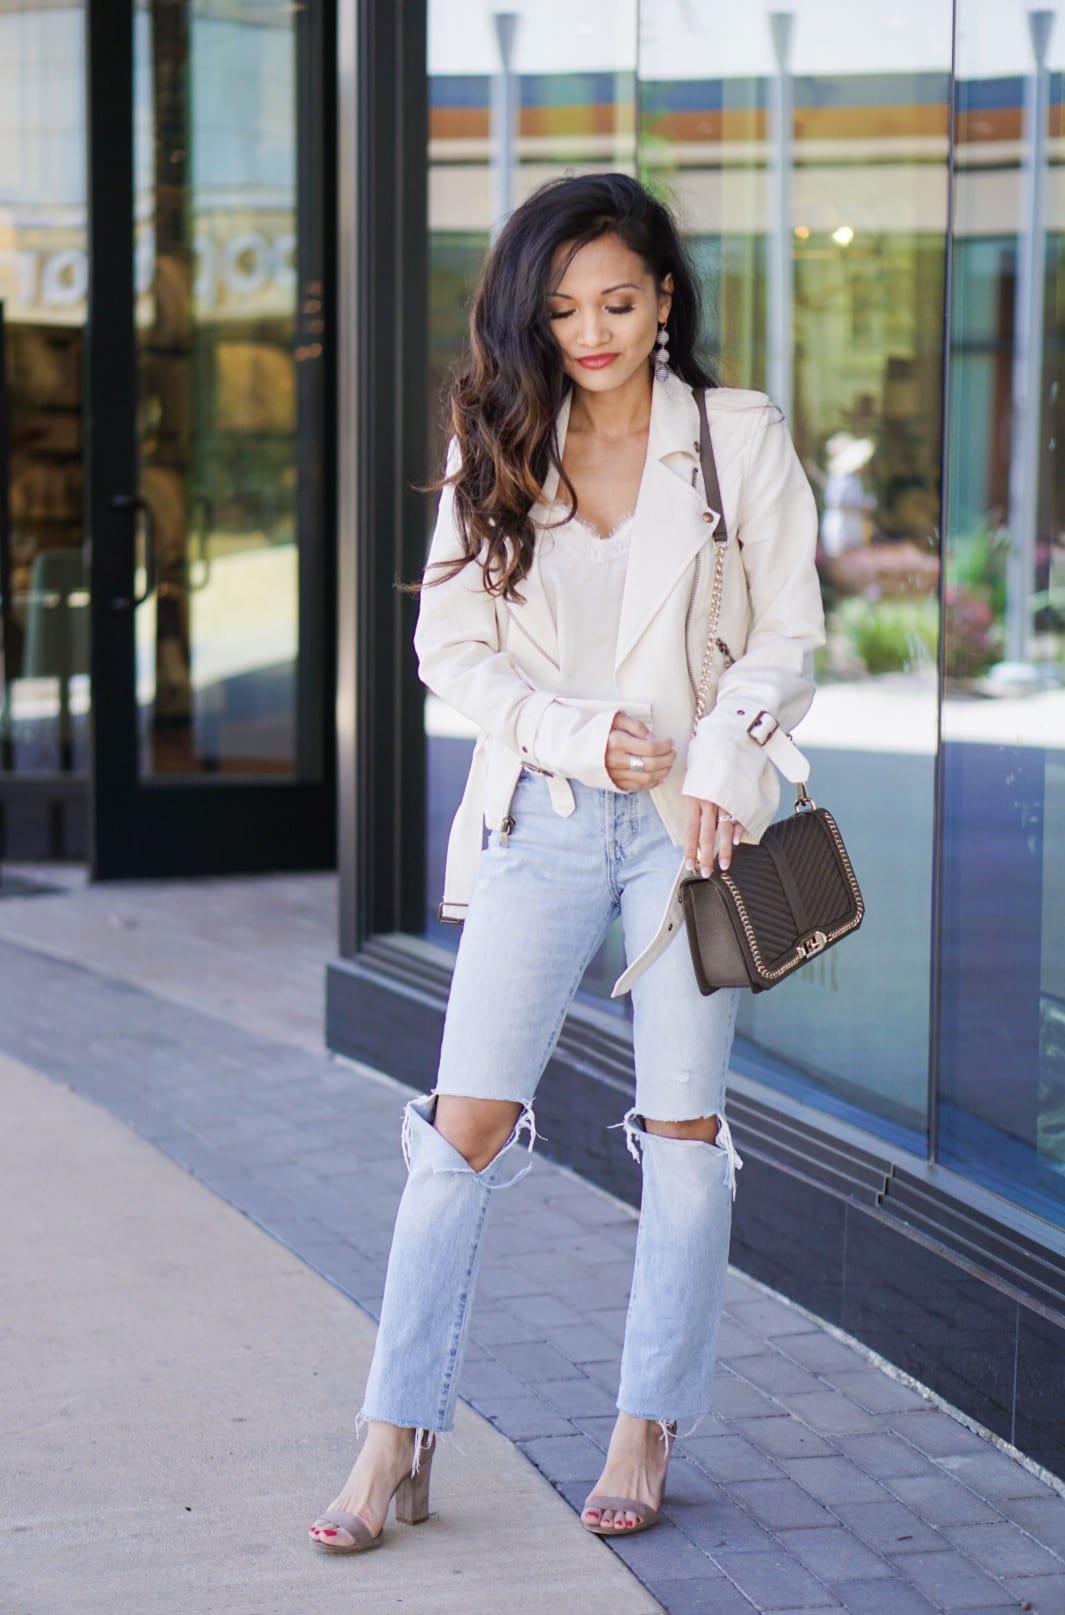 #summerstyle, #summerjackets, #summerfashion,#houstonblogger, #dawnpdarnell, white jacket, moto jacket, white cami, busted knee crops, Levi's, Paige Denim, Rebecca Minkoff Love crossbody bag, blazer